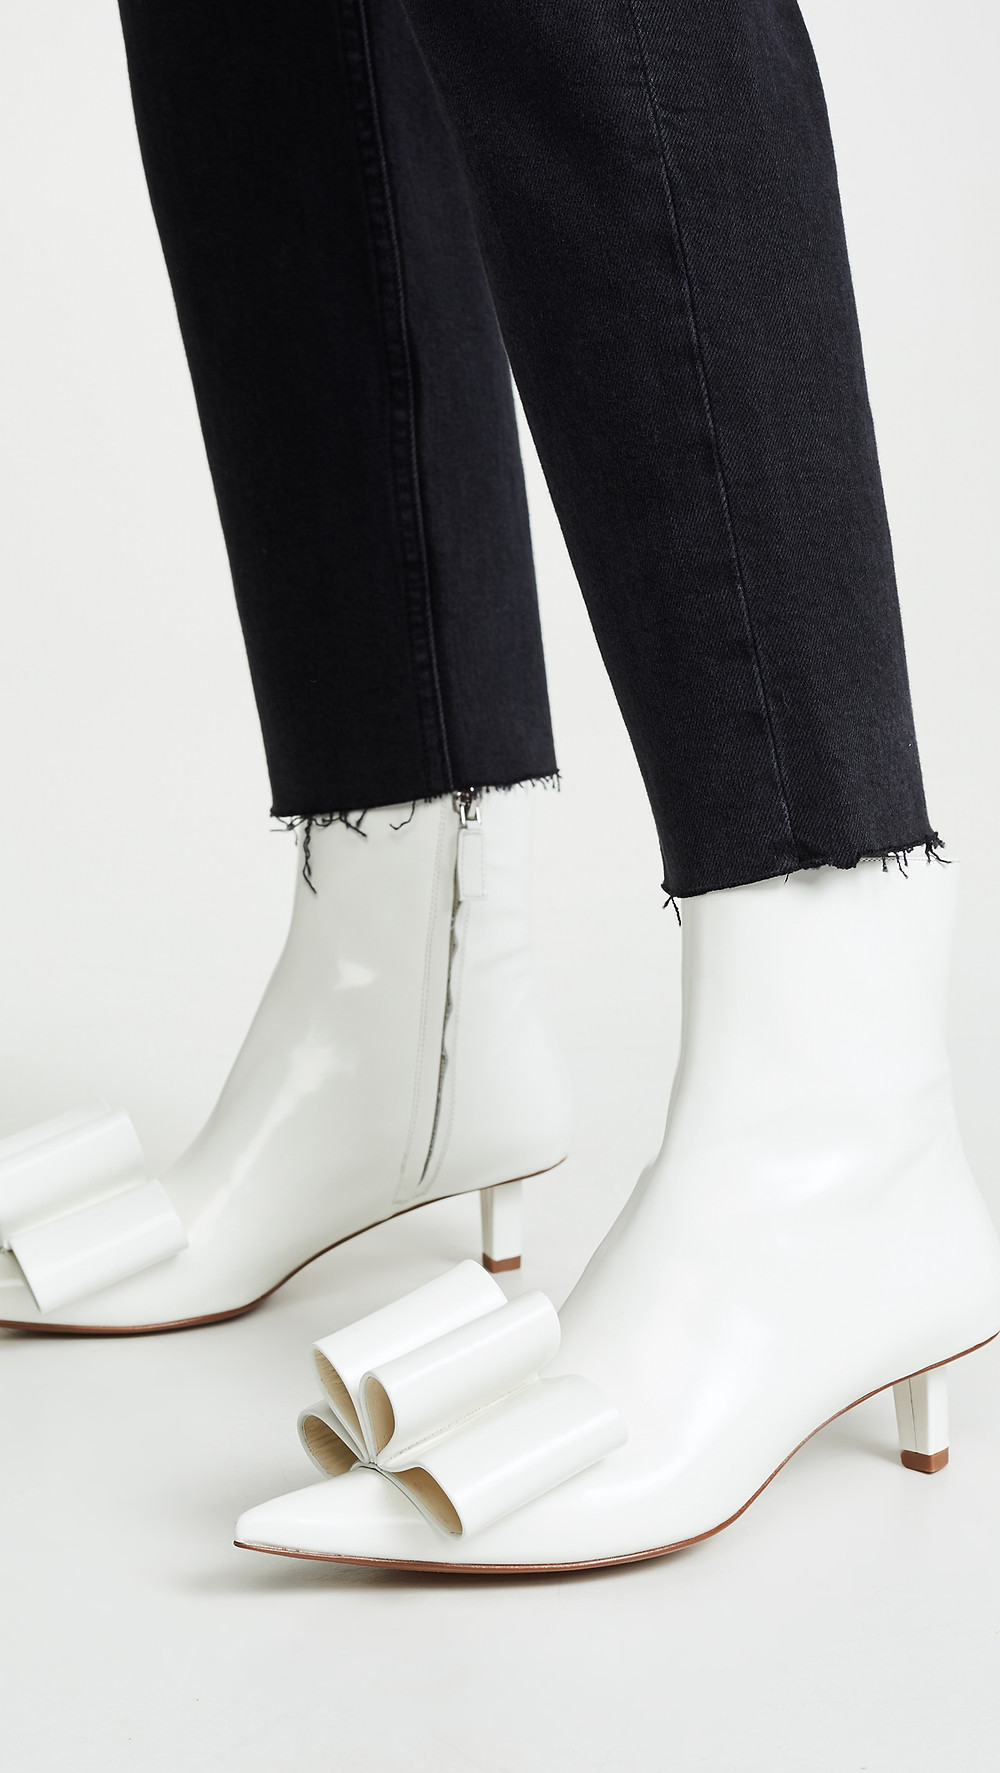 Marc Jacobs Bow Ankle Boots $550